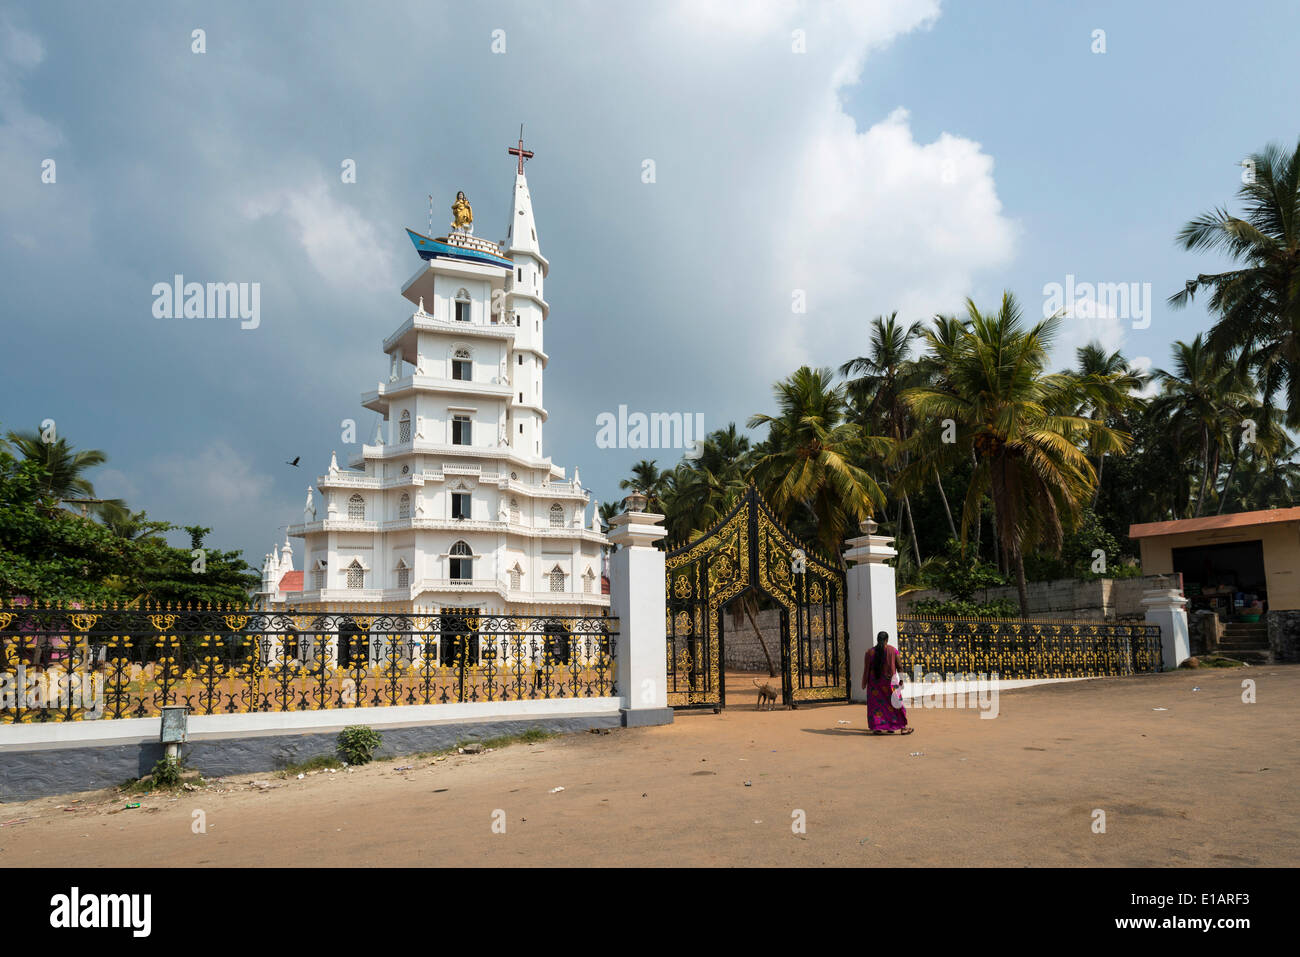 St Mary's Church, Vizhinjam, Kerala, India - Stock Image